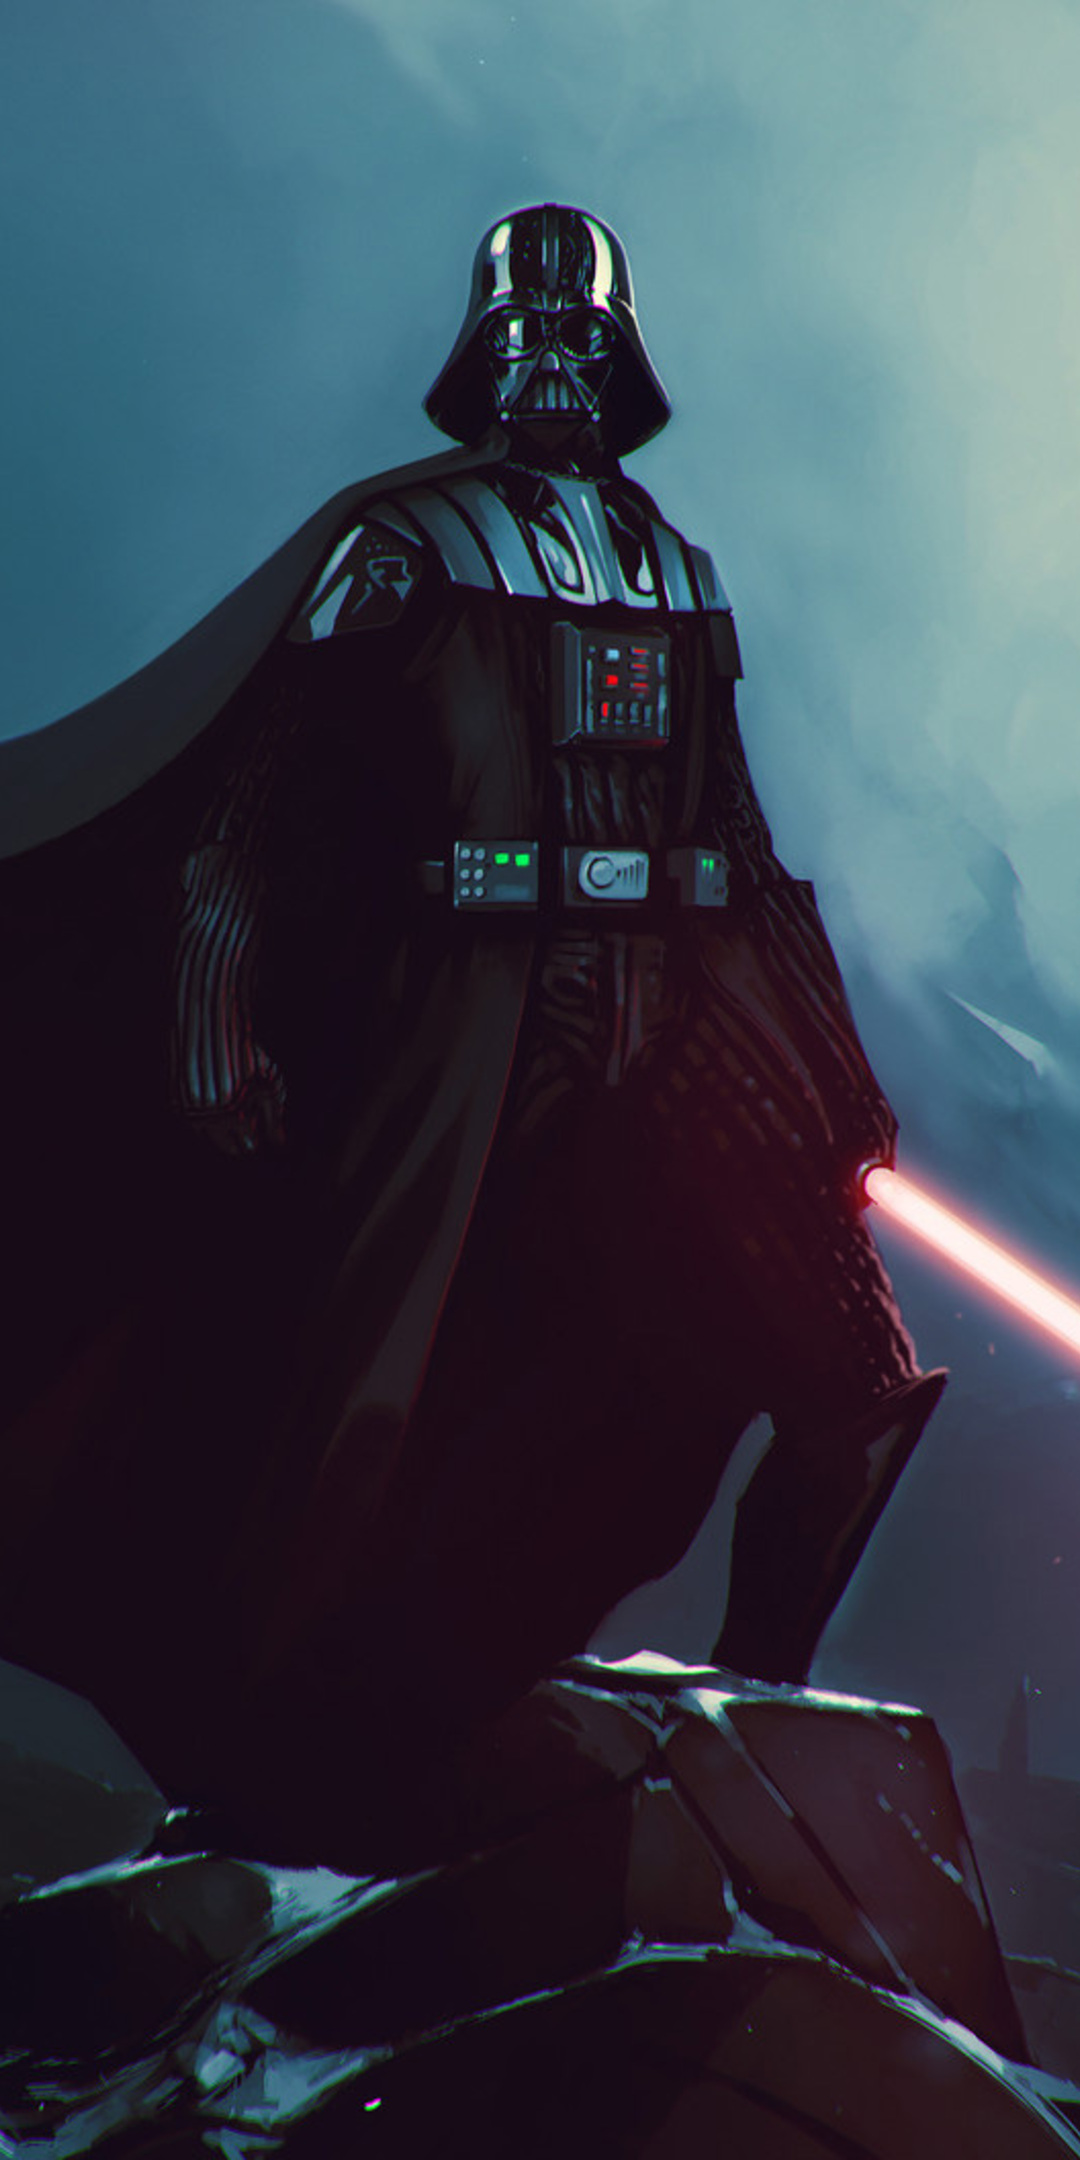 darth-vader-best-artwork-po.jpg